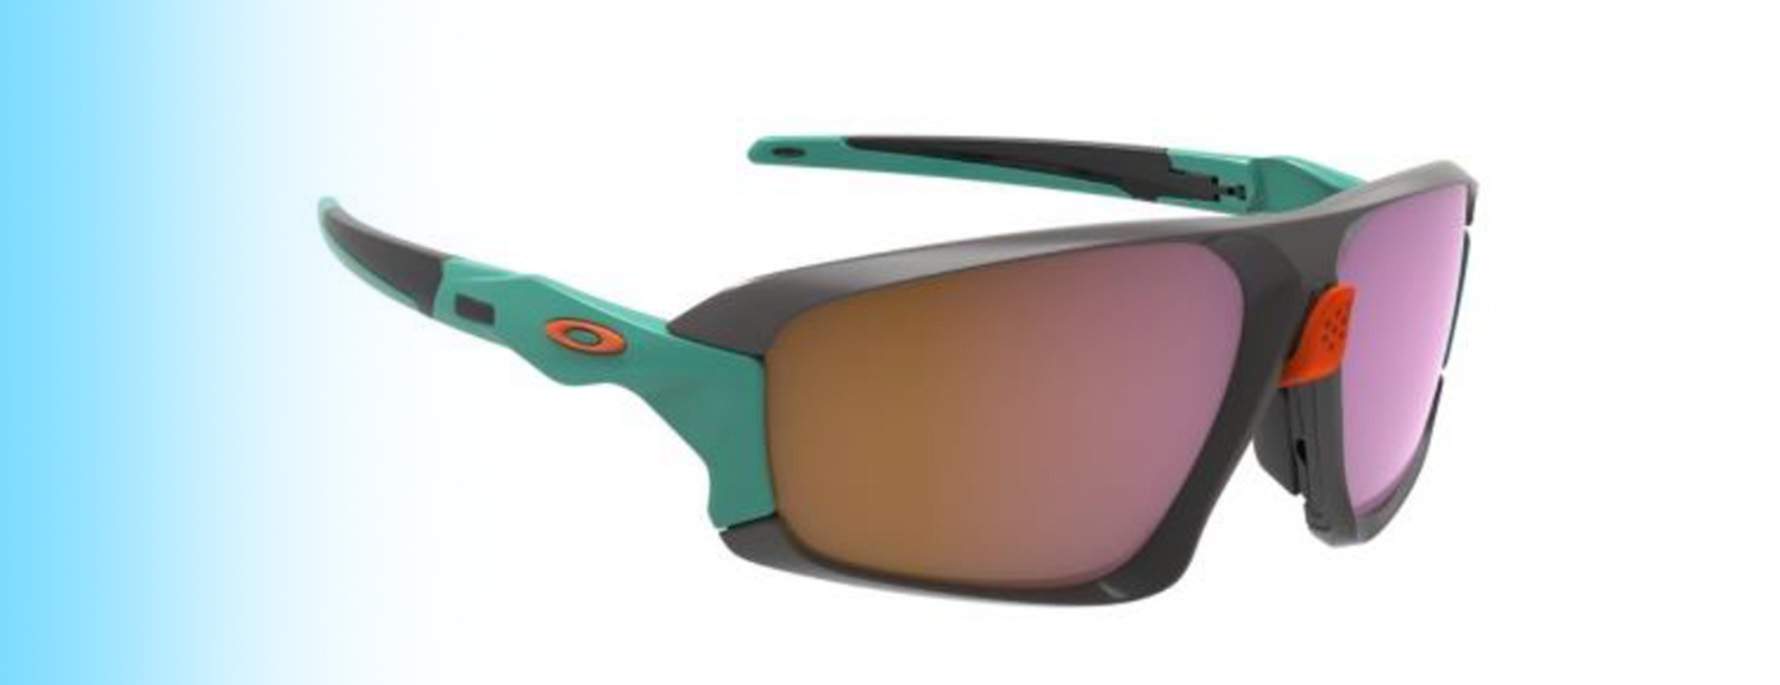 Oakley Field Jacket OO9402 | Oakley Field Jacket OO9402 in green and orange | EyeWearThese.com